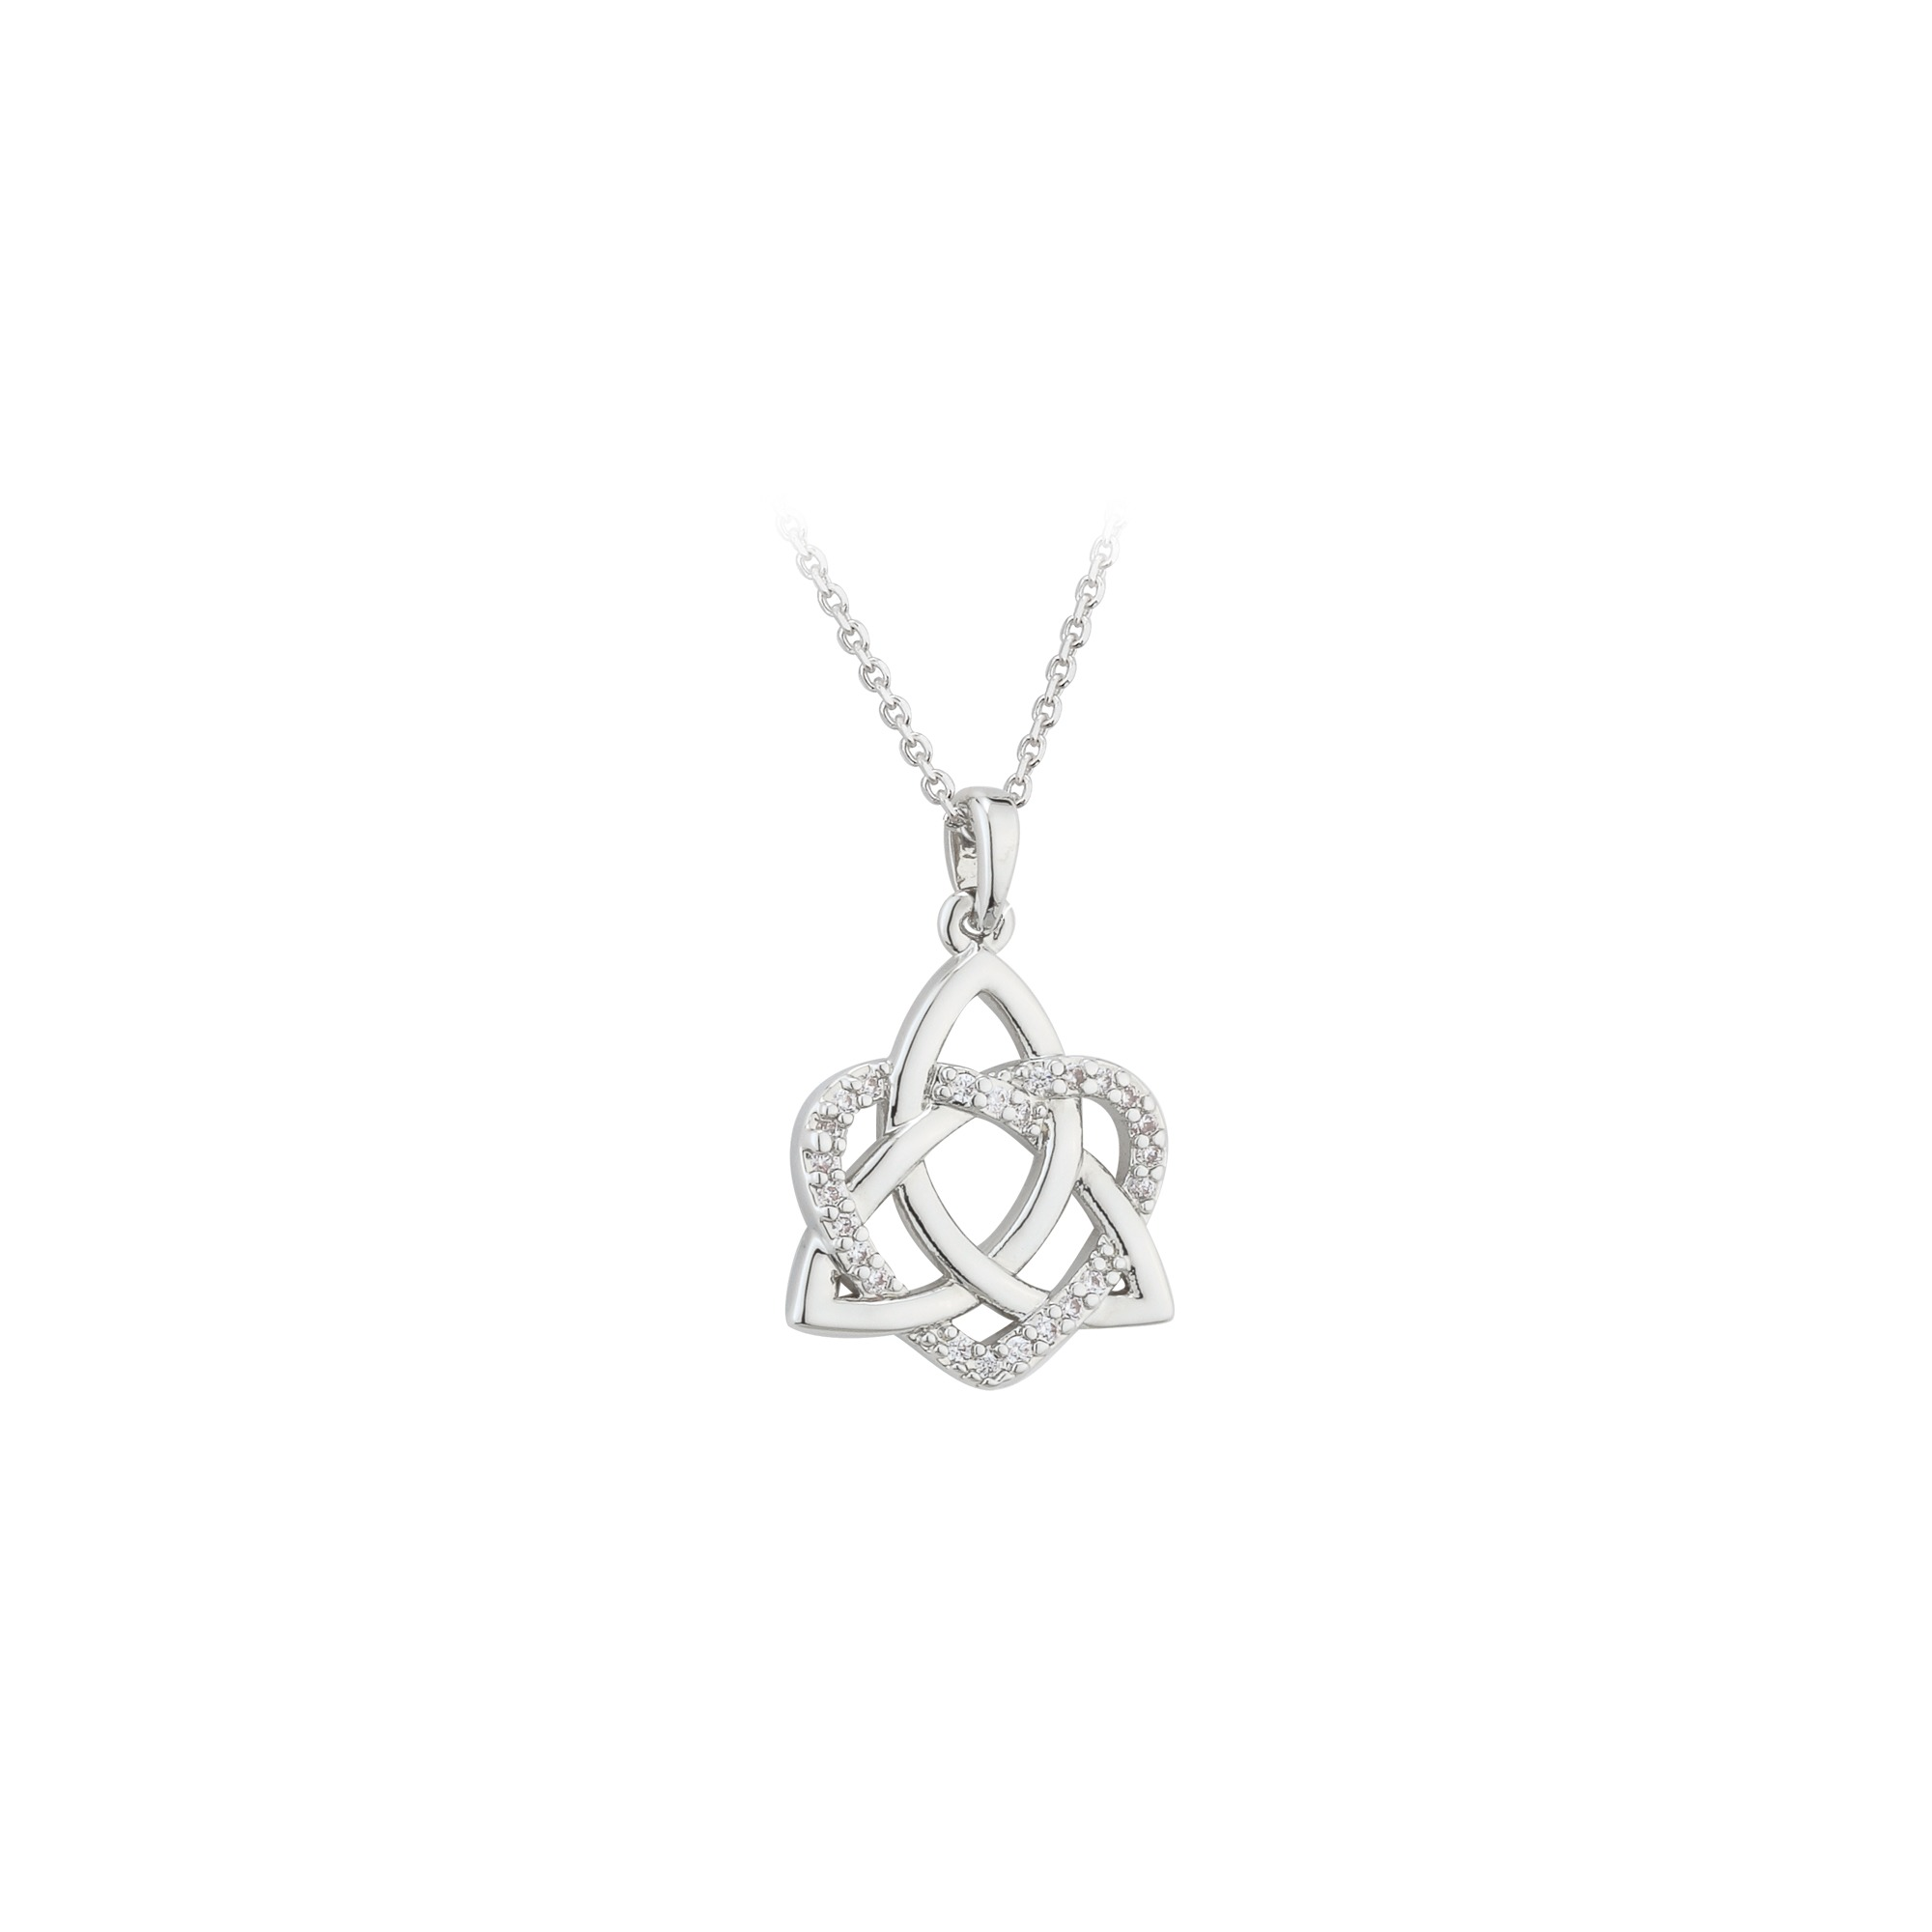 gerrits knot products hailey necklace